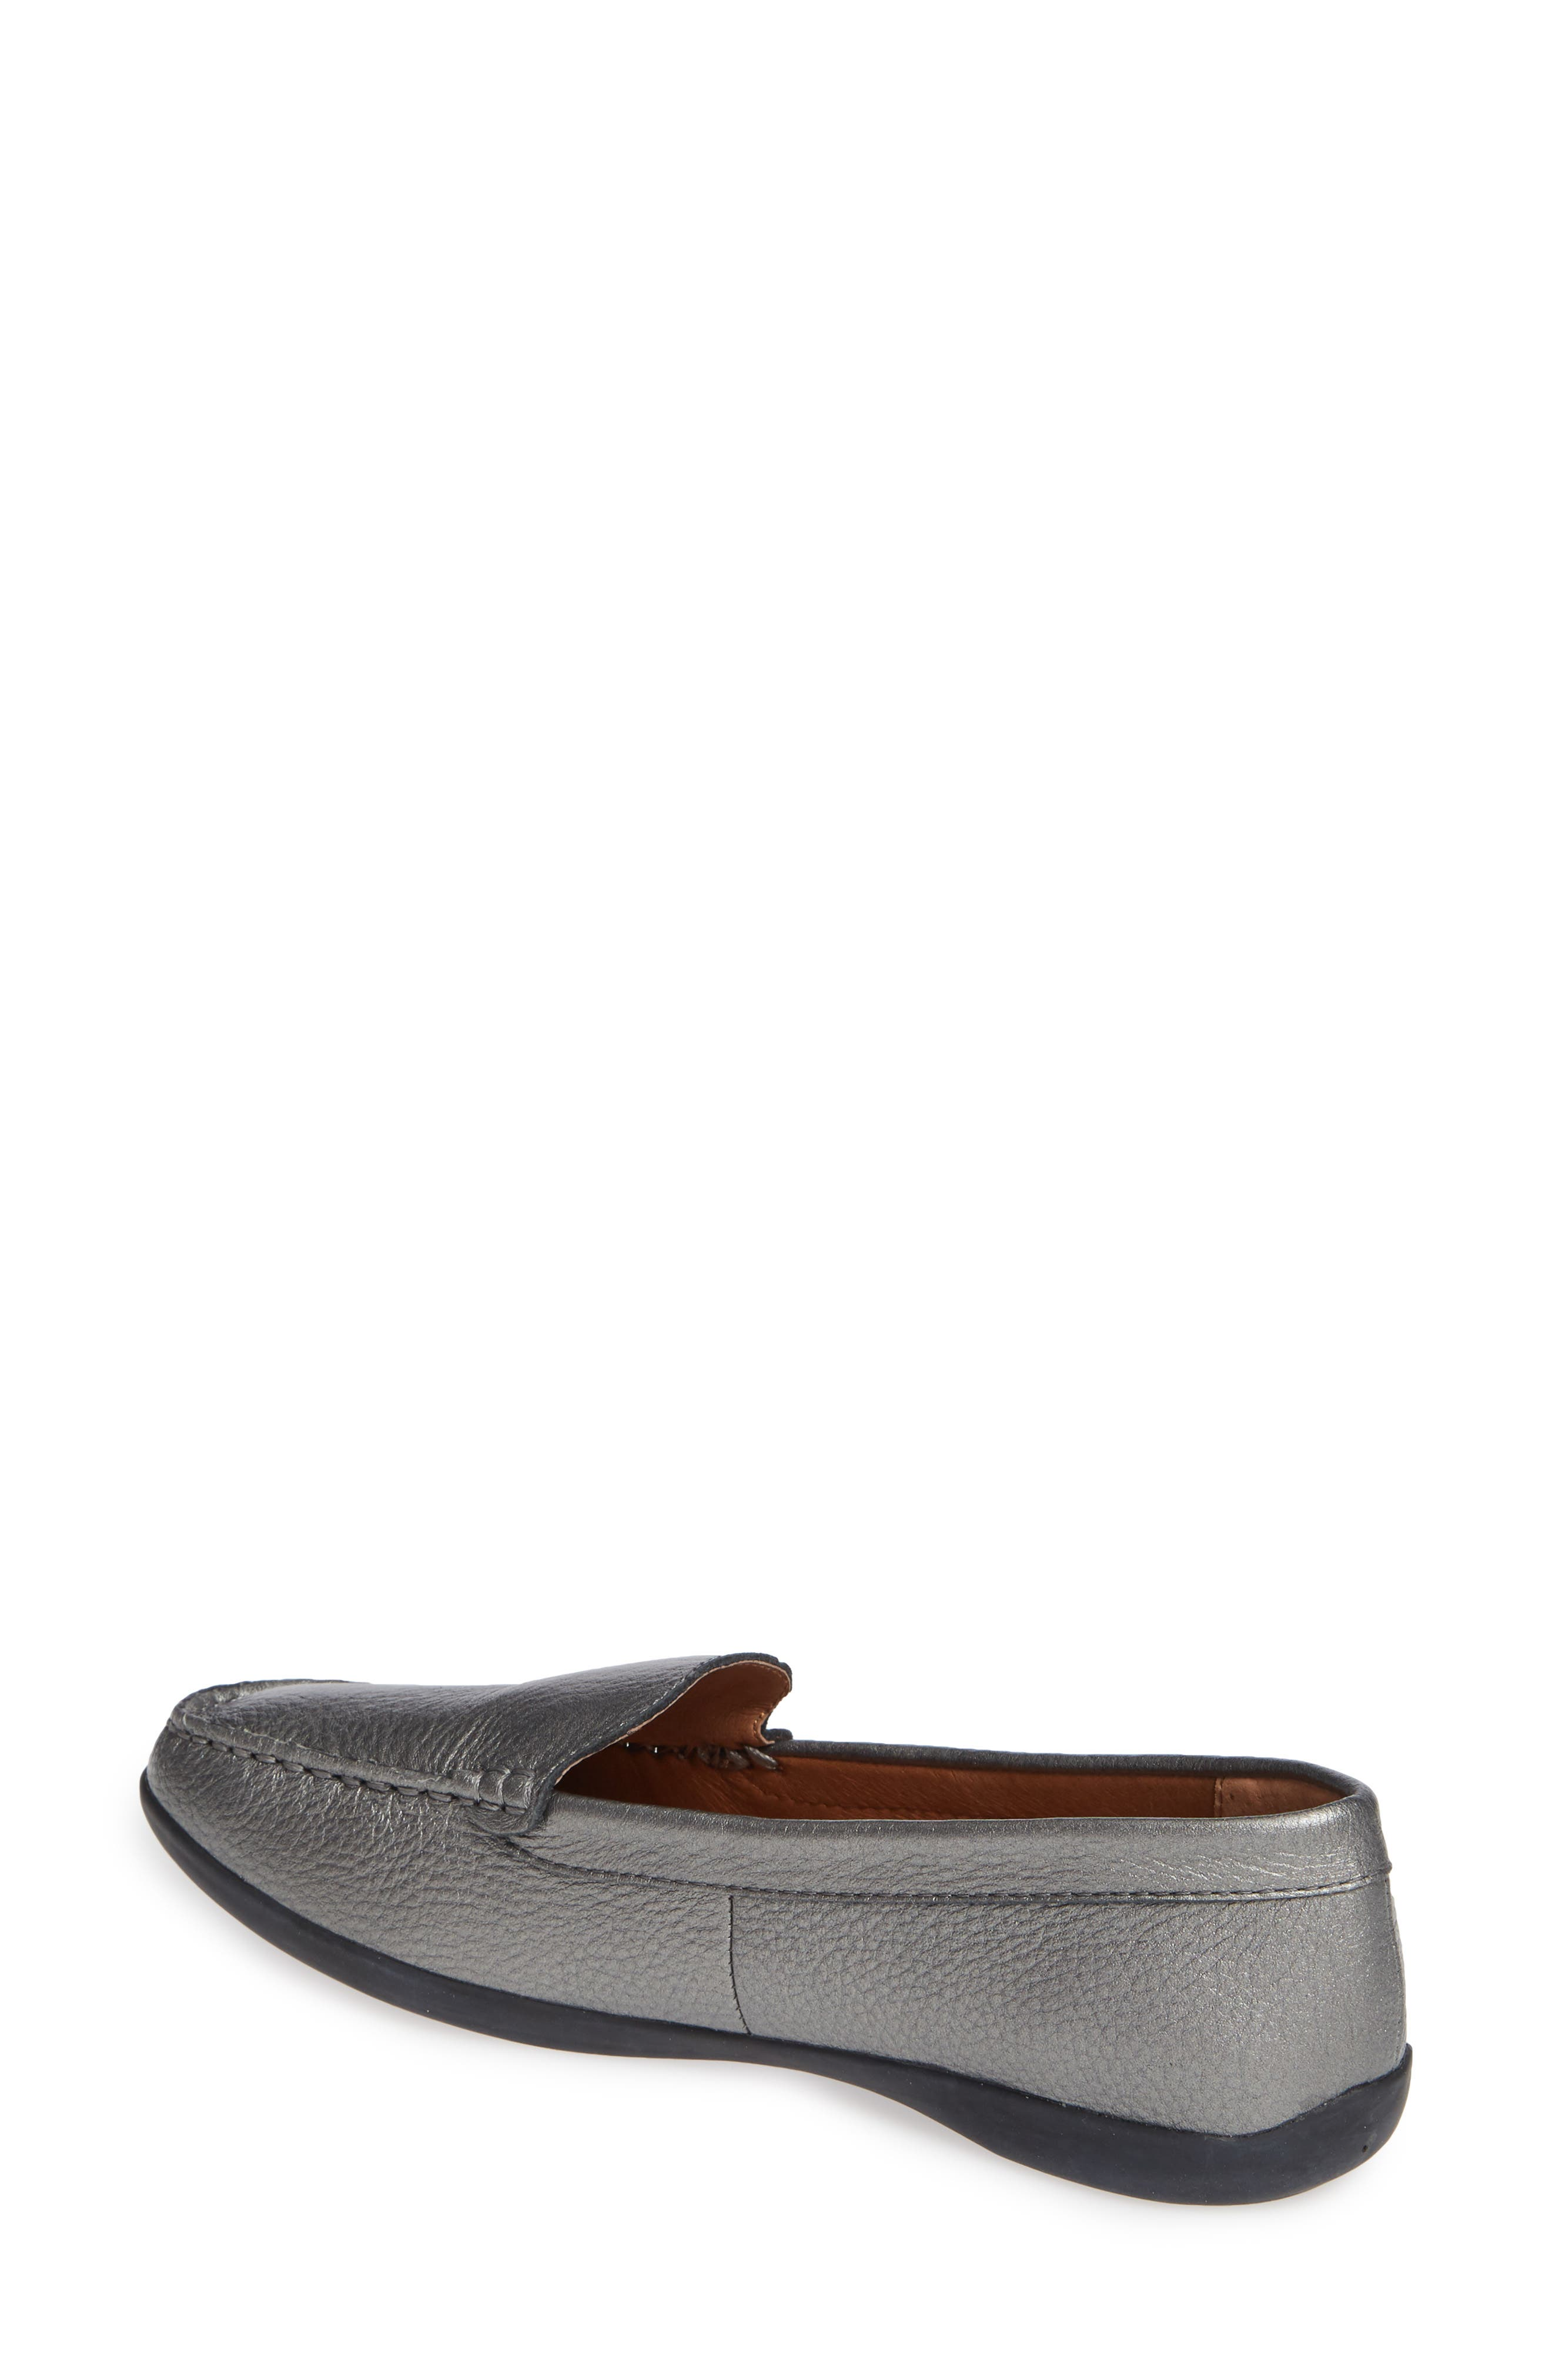 SUDINI, Laila Loafer, Alternate thumbnail 2, color, PEWTER FABRIC